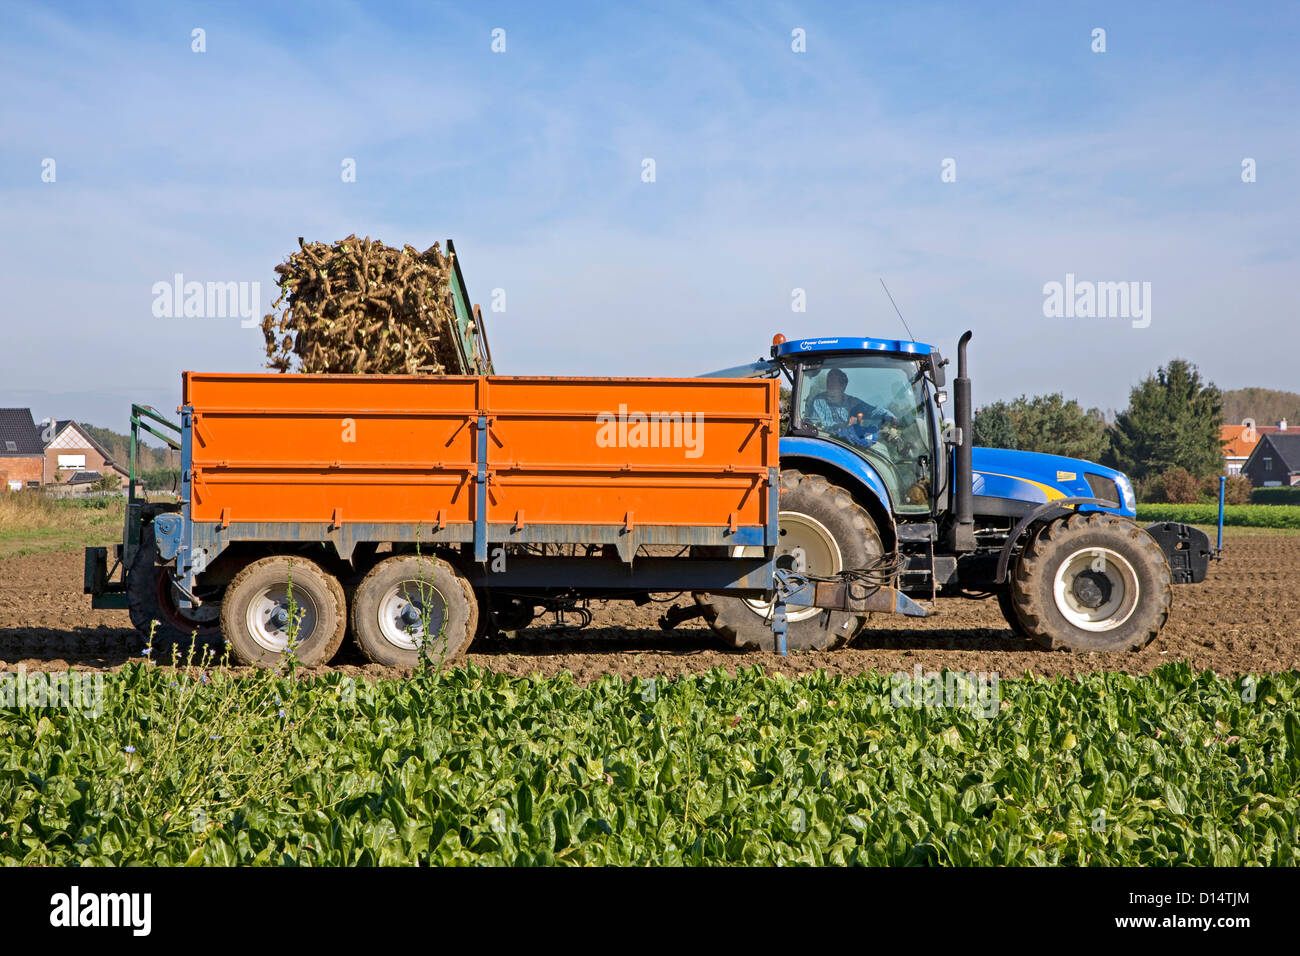 Field with cultivated chicory plants being raised by farmer riding tractor with harvester - Stock Image